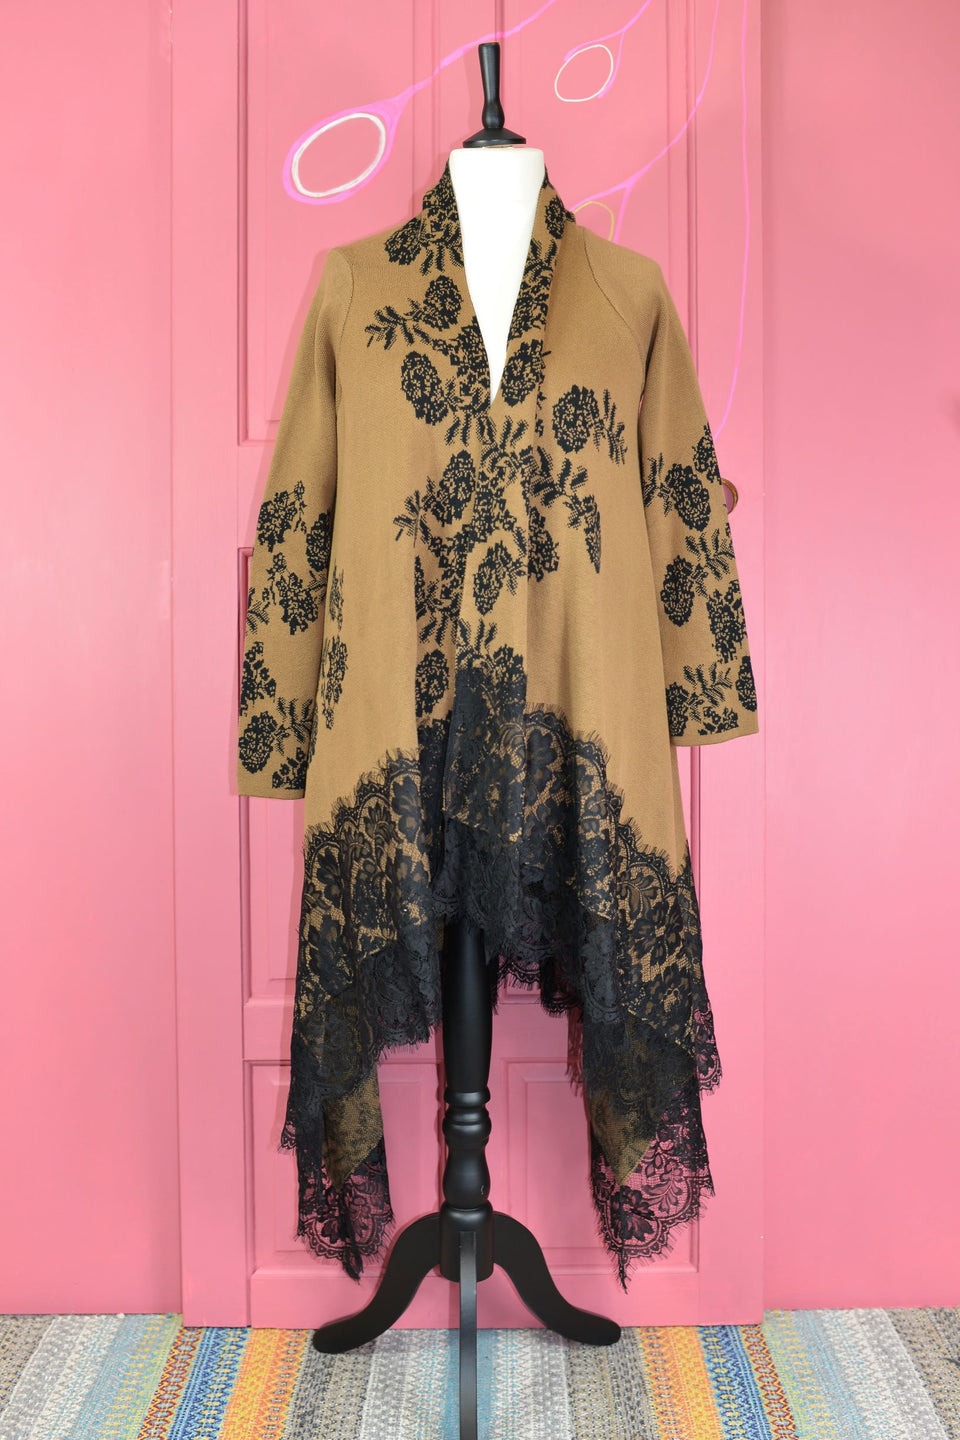 KALEIDOSCOPE Women's Long Line Cardigan Brown & Black Floral & Lace, Size M. New with tags.